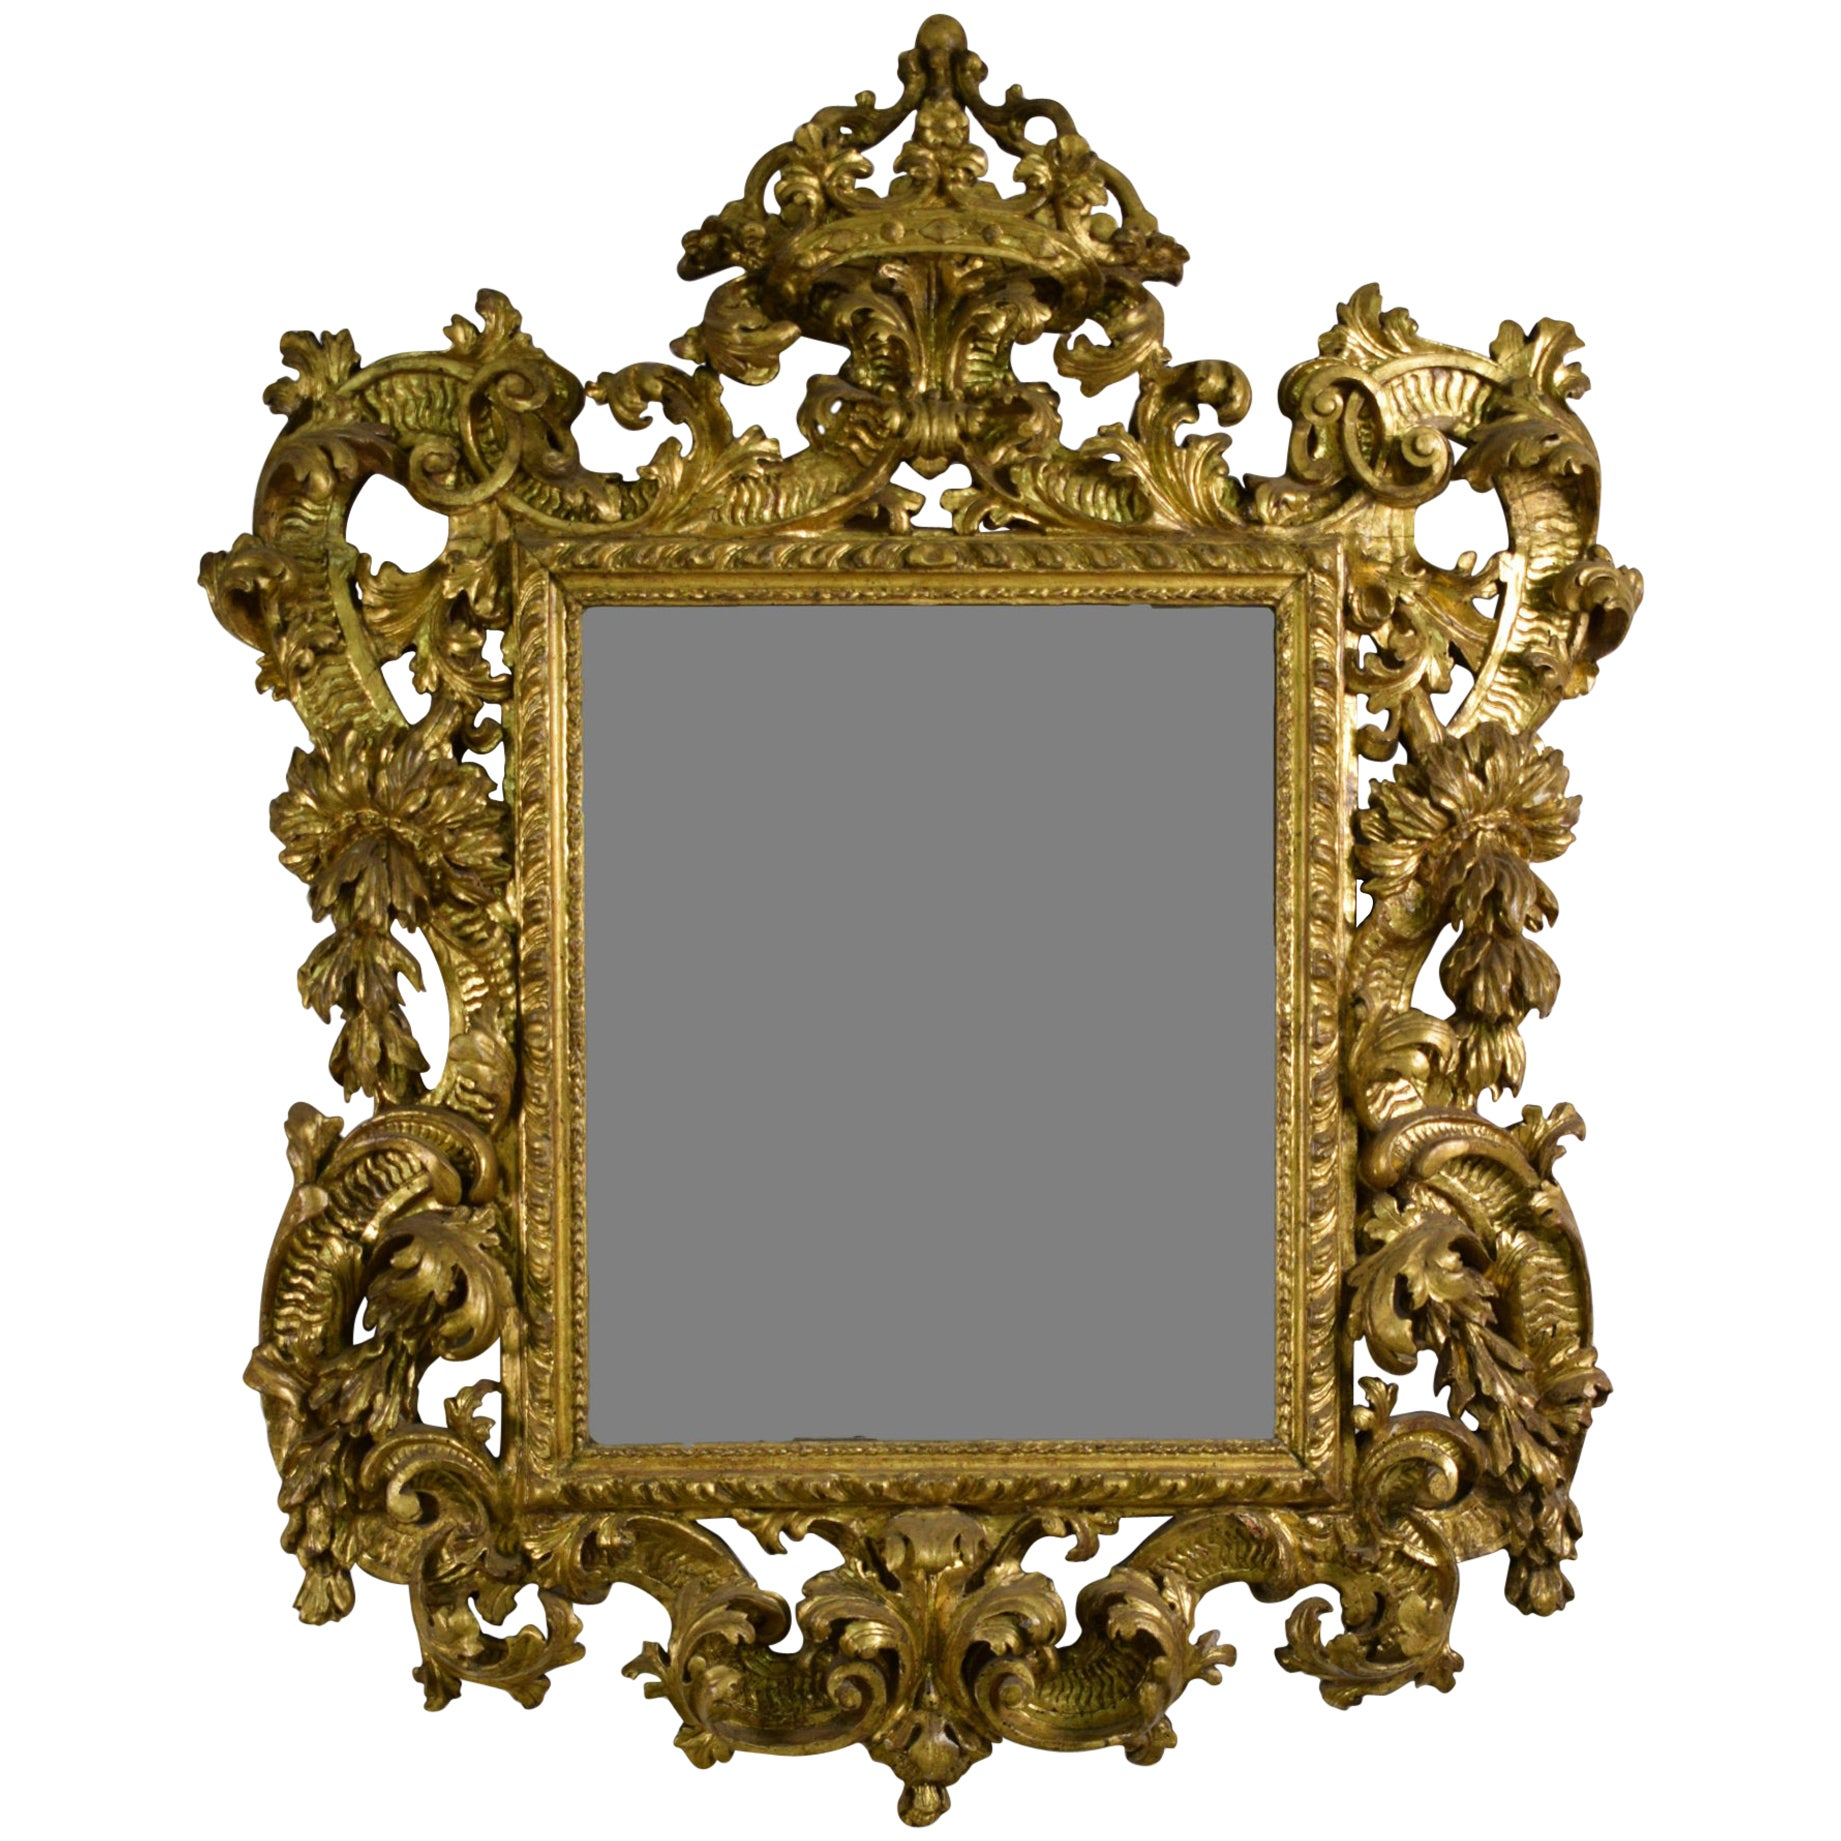 18th Century, Italian Baroque Giltwood Mirror